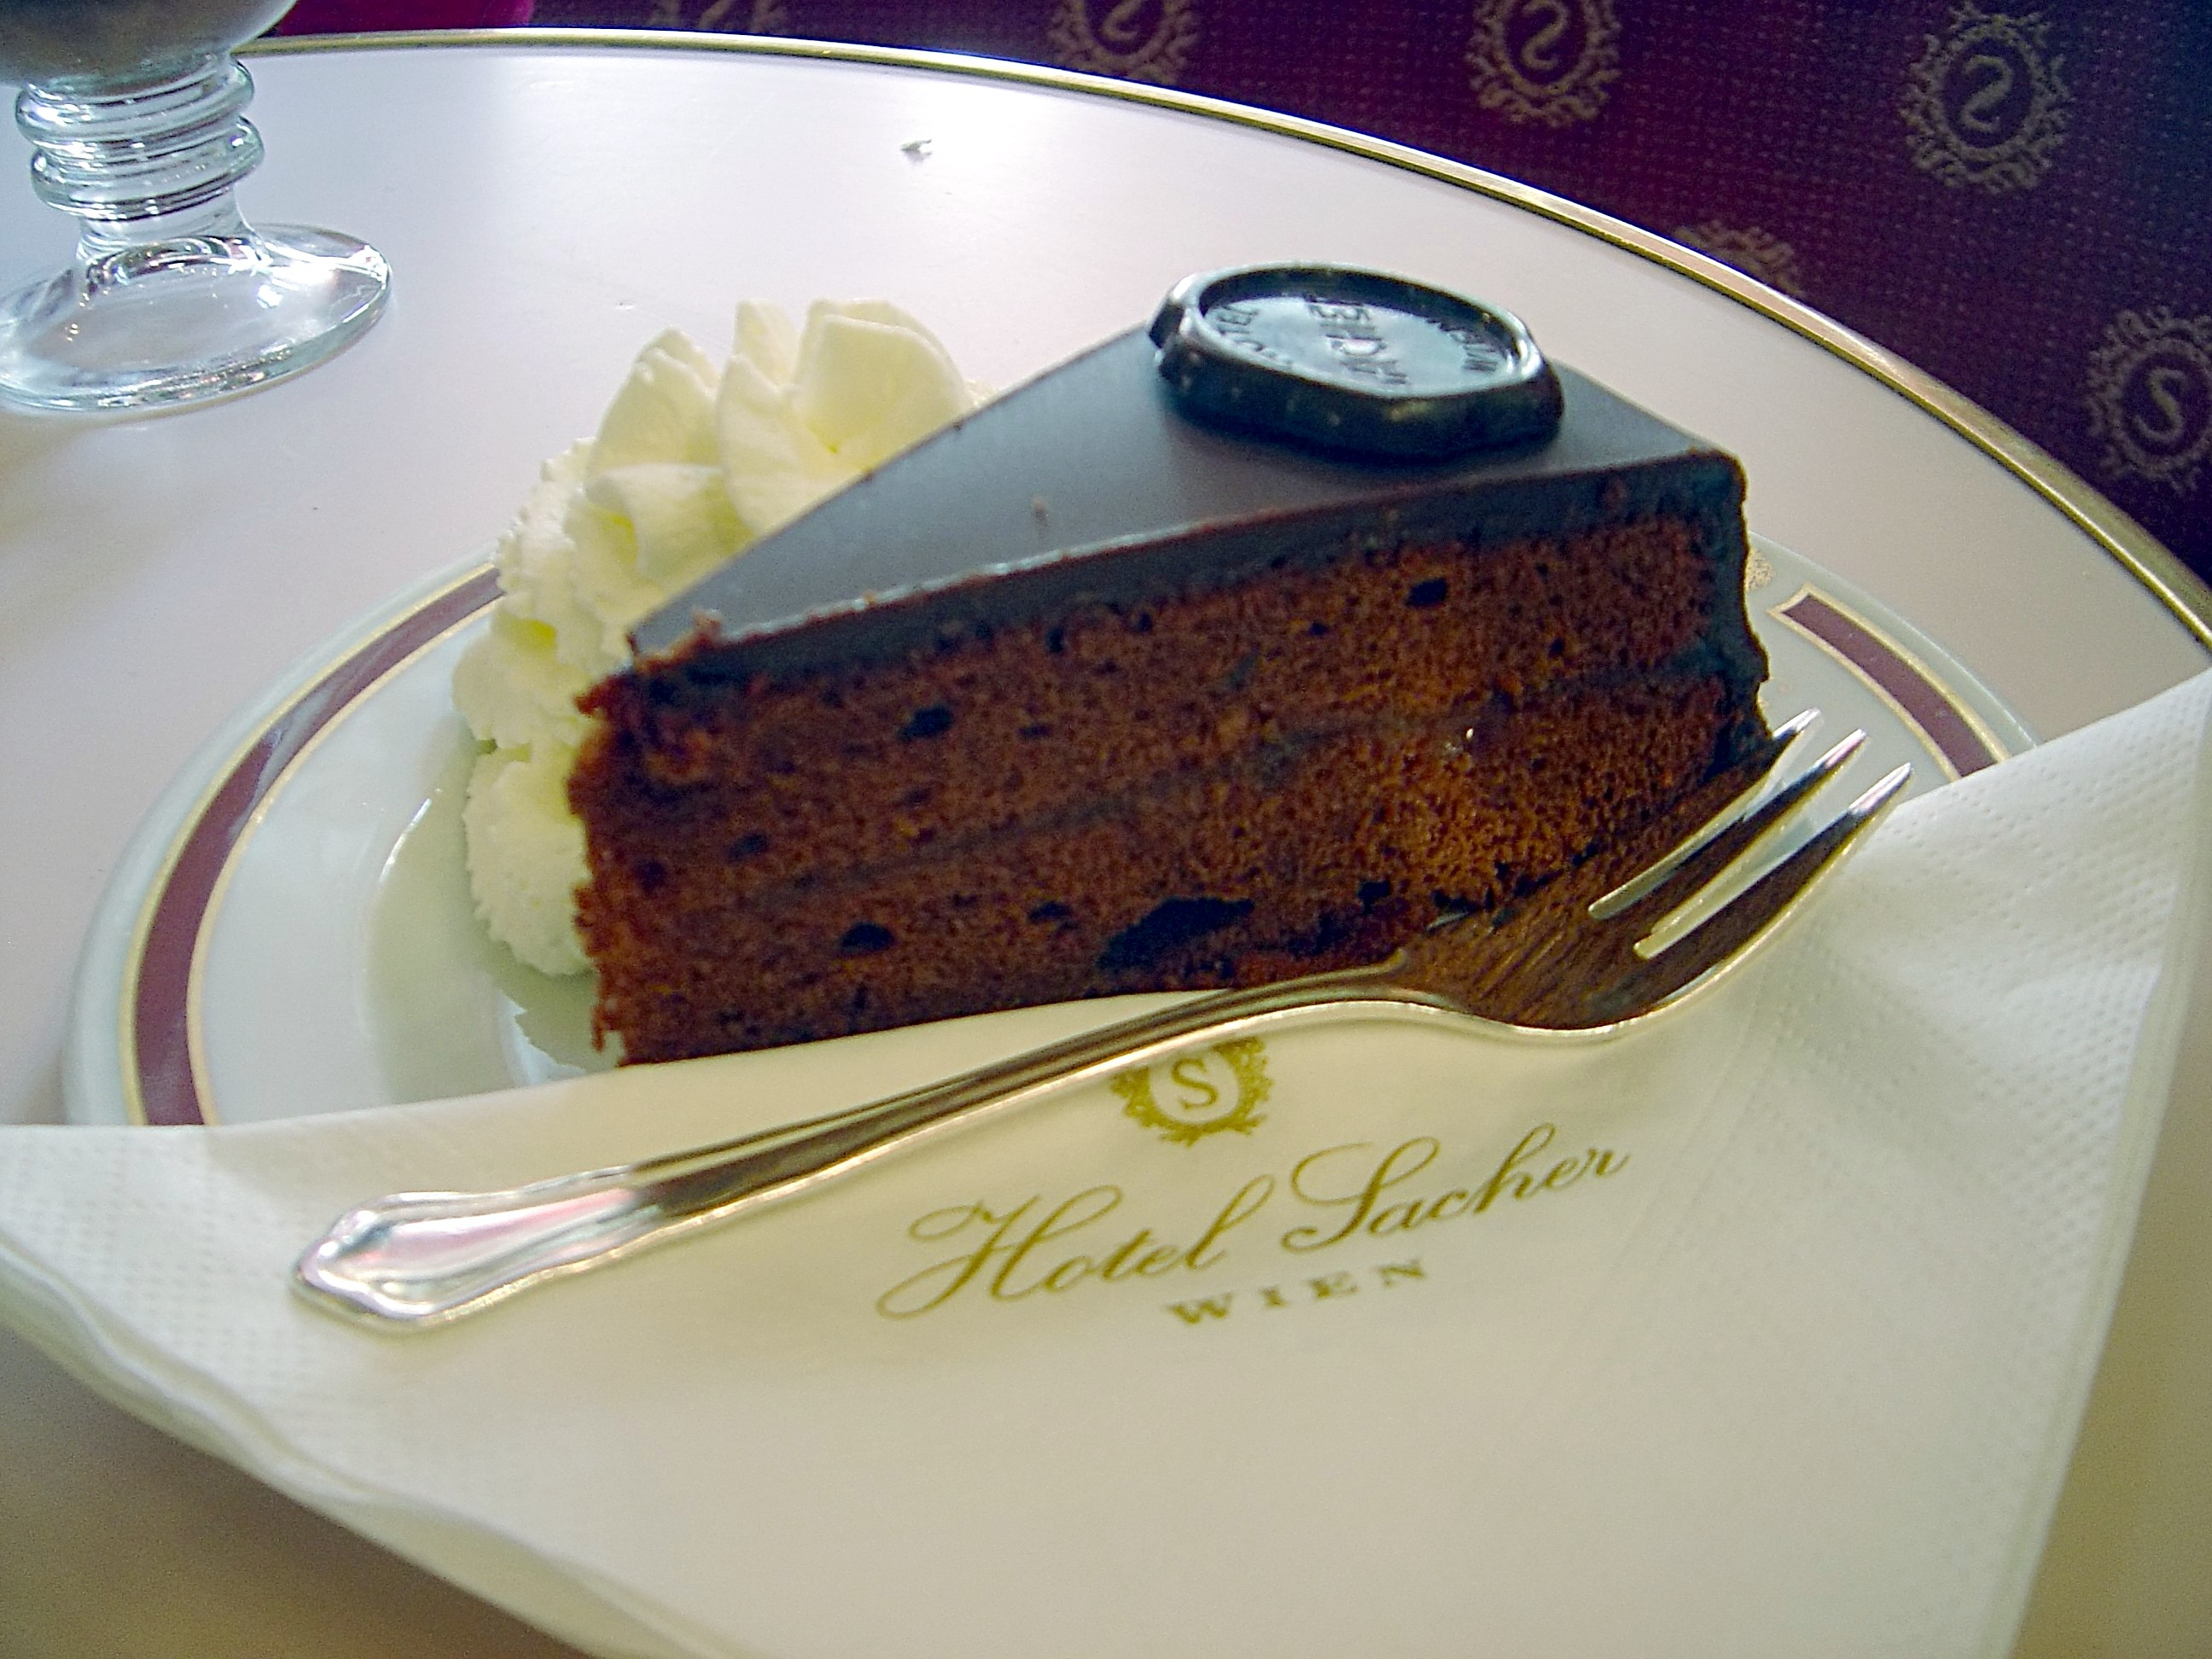 File:Sachertorte DSC03027.JPG - Wikipedia